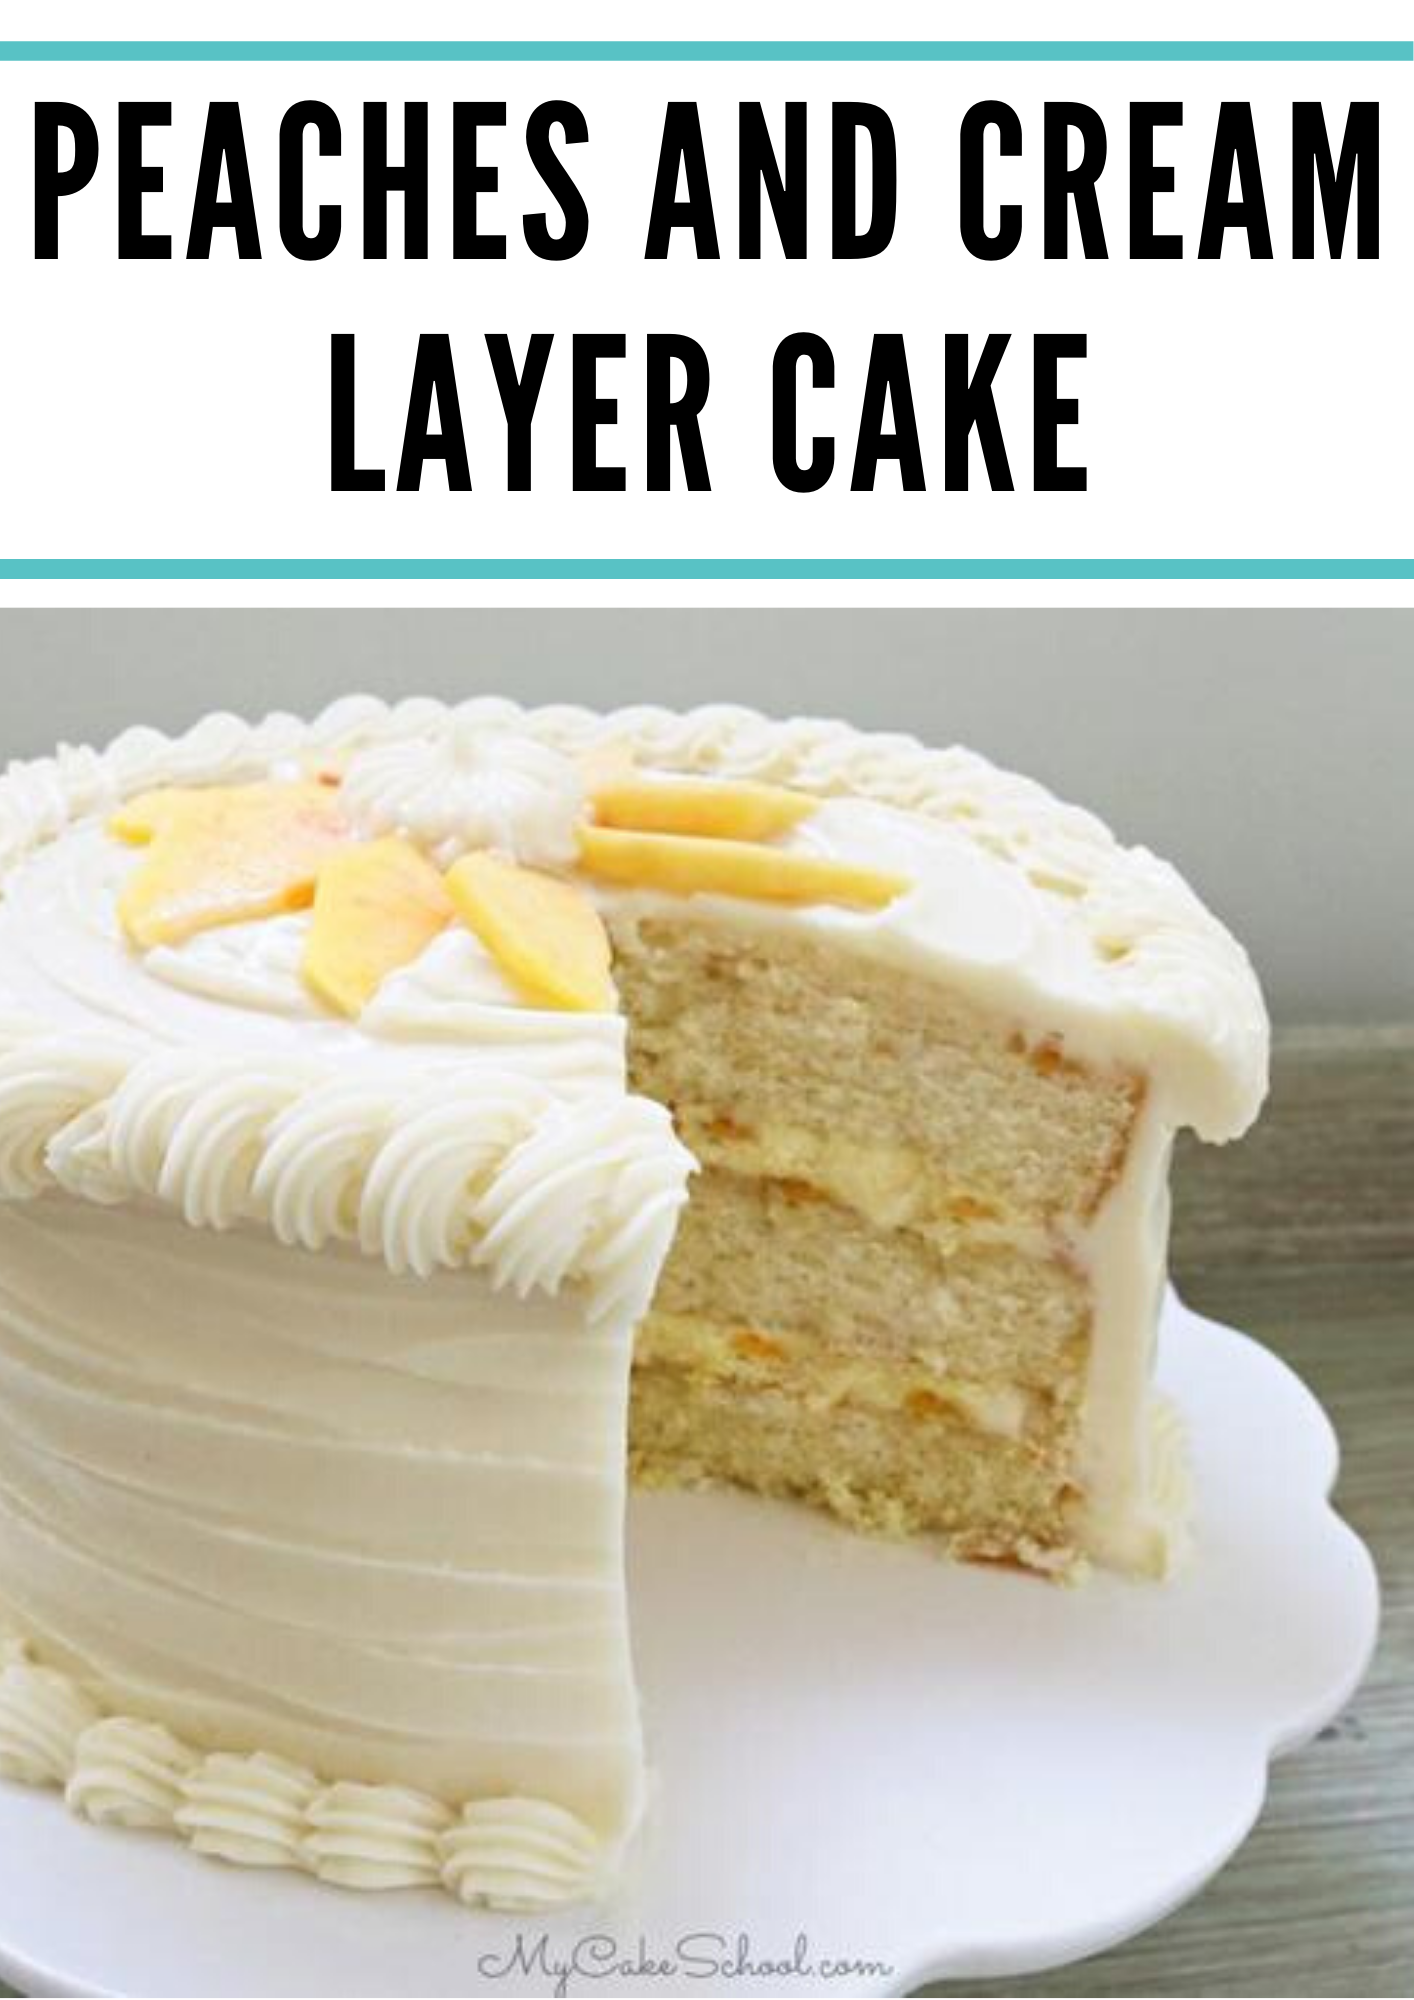 Peaches And Cream Layer Cake In 2020 Cake Recipe With Sour Cream Chocolate Cake Recipe Easy Cake Recipes Easy Homemade